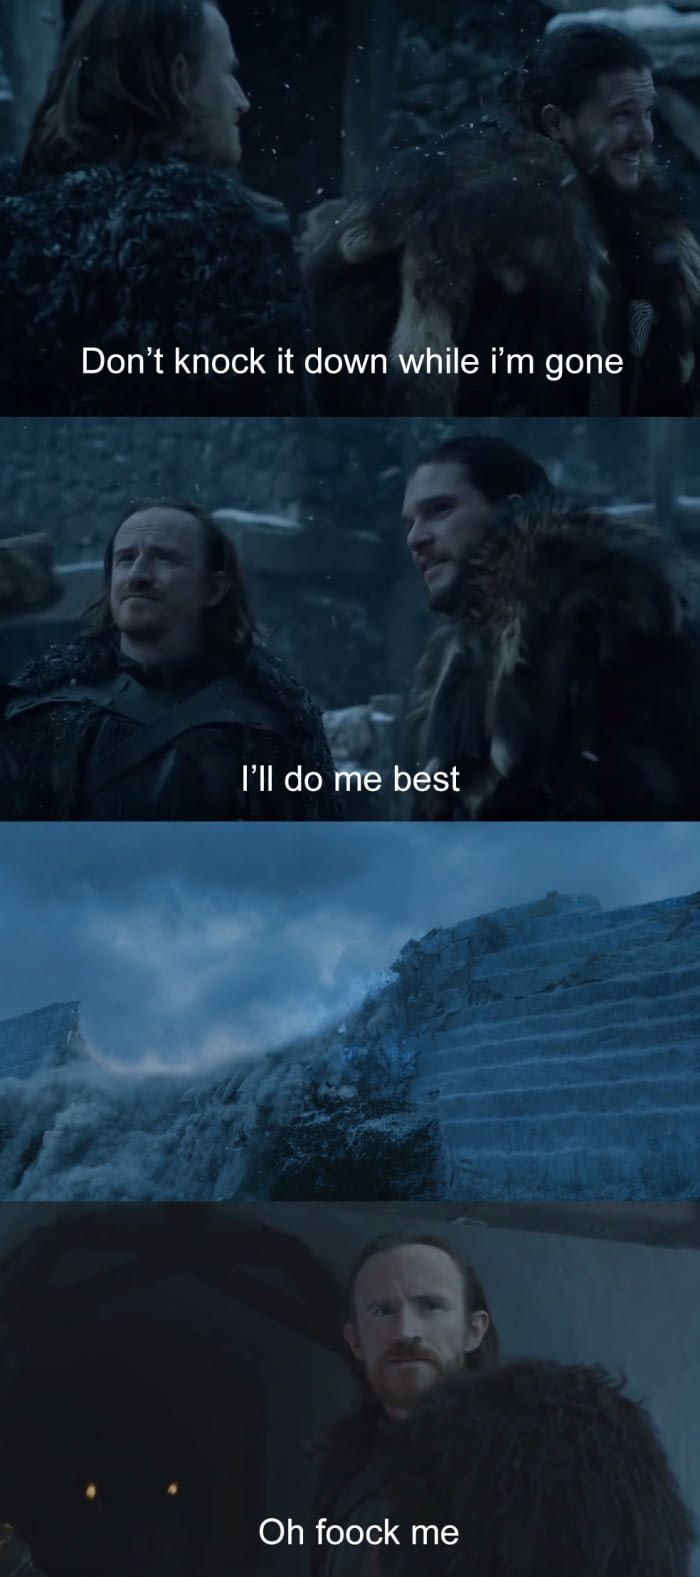 You had one job, Game of Thrones.